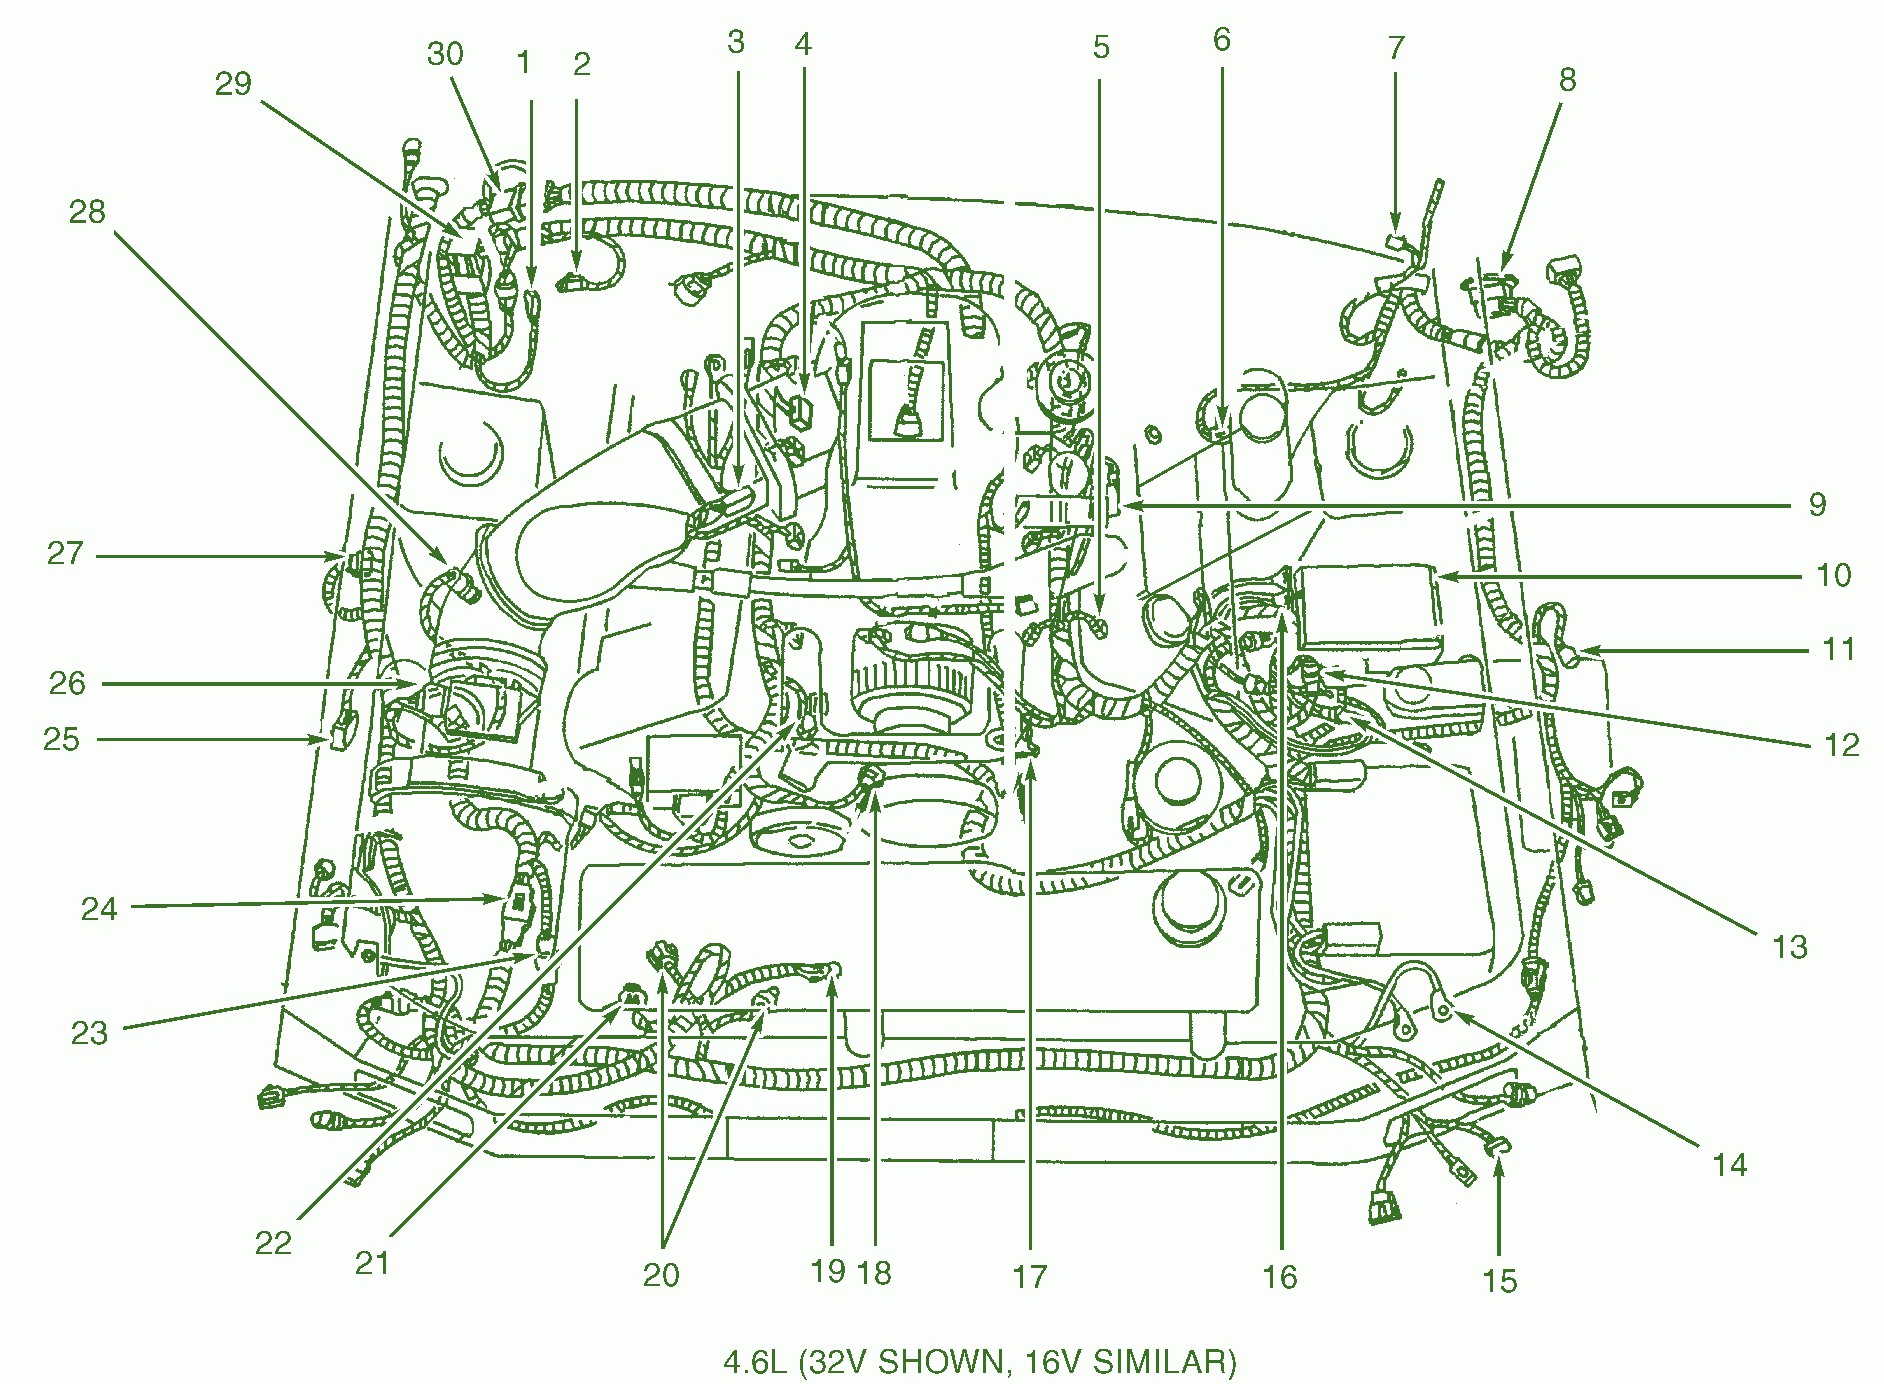 1969 Ford Mustang Wiring Diagram 1969 Wiring Identification